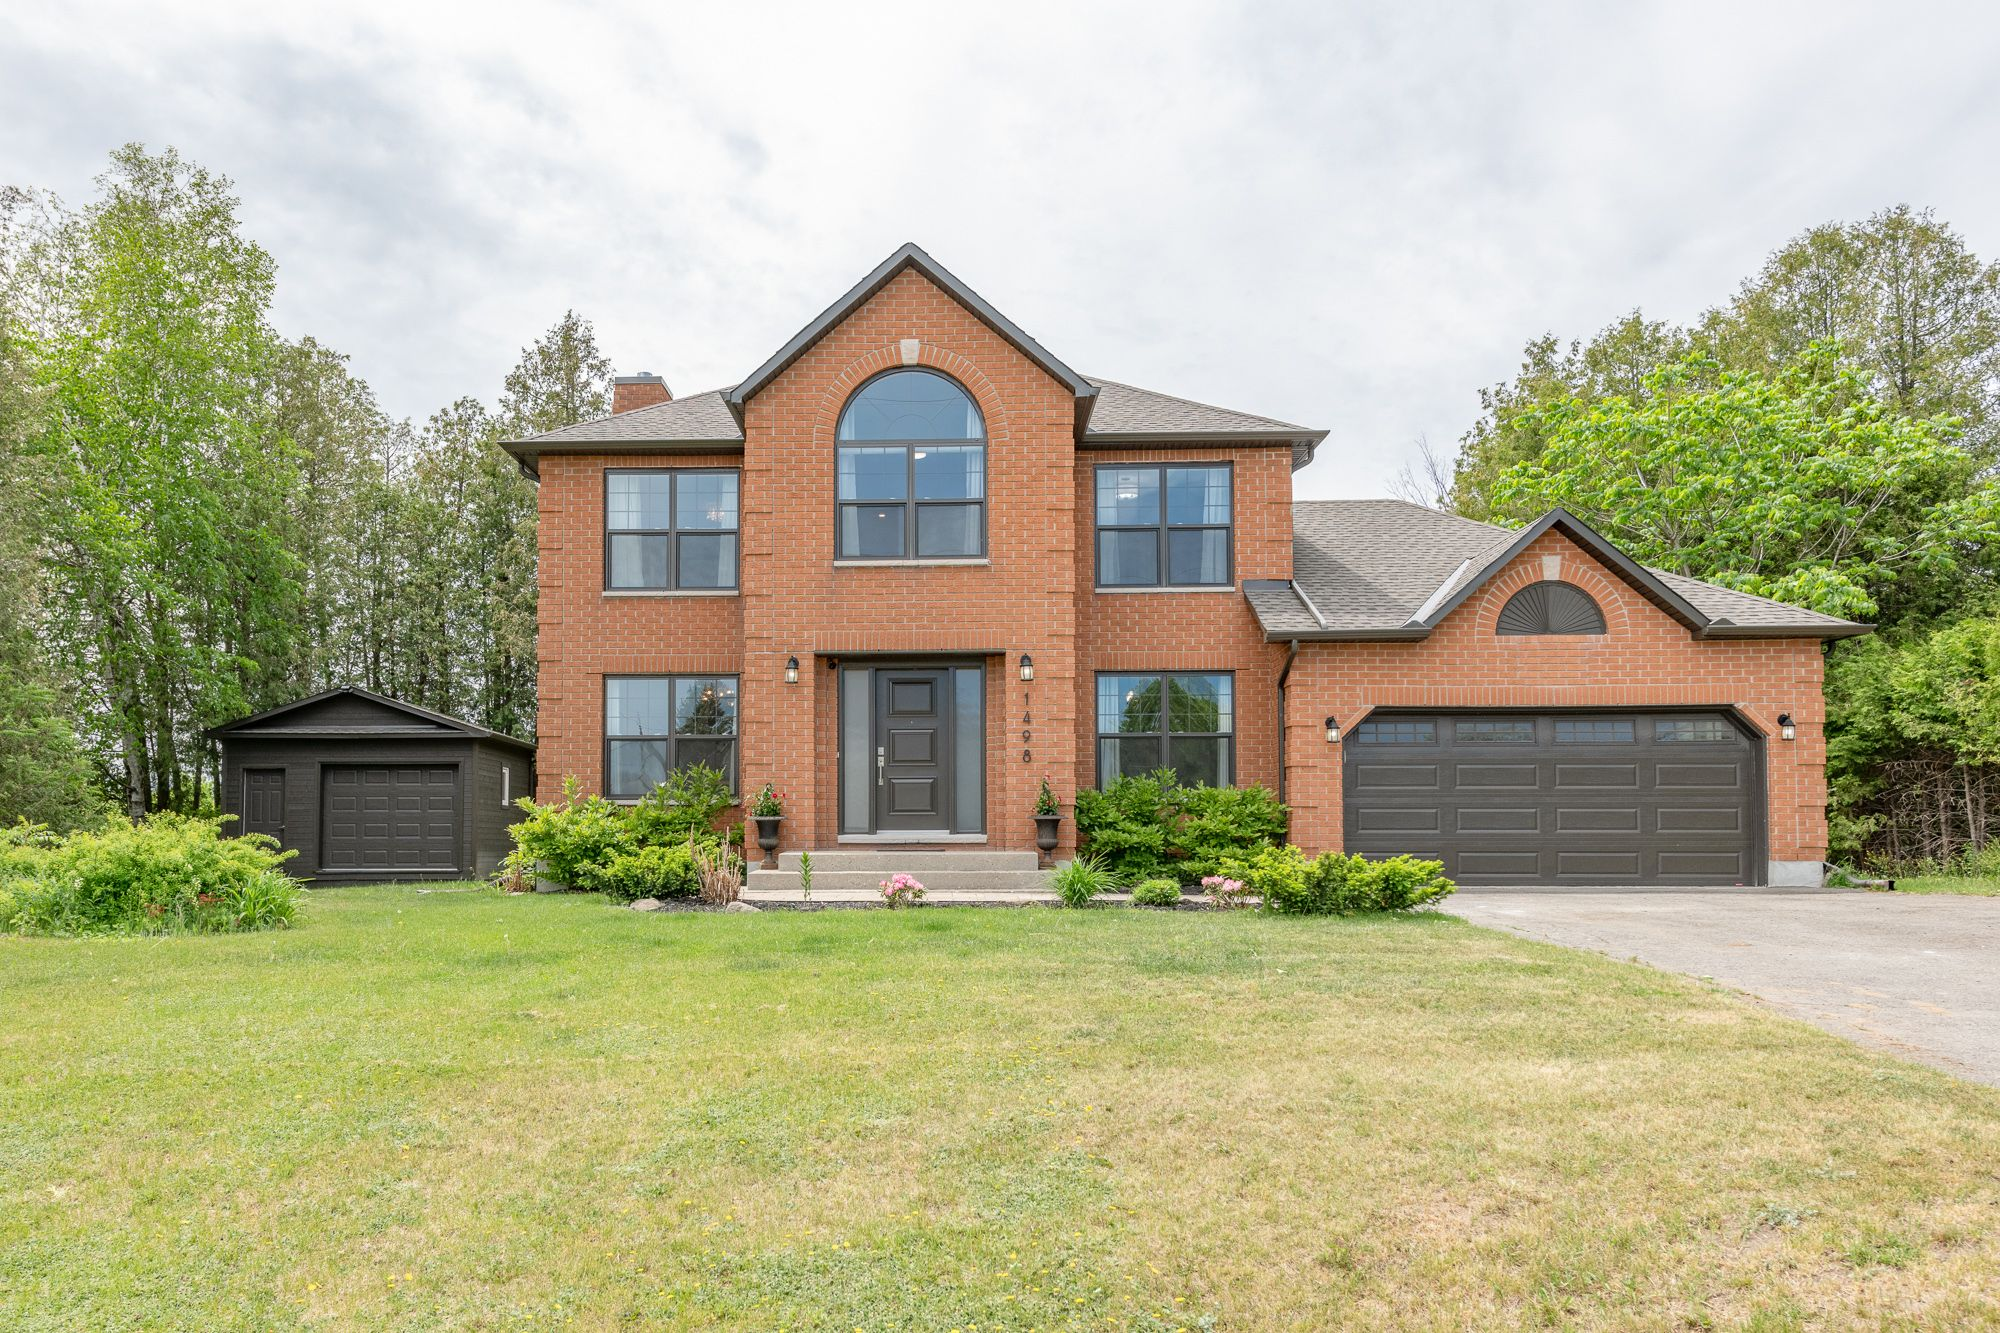 Main Photo: 1498 SPARTAN GROVE Street in Greely: House for sale : MLS®# 1244549